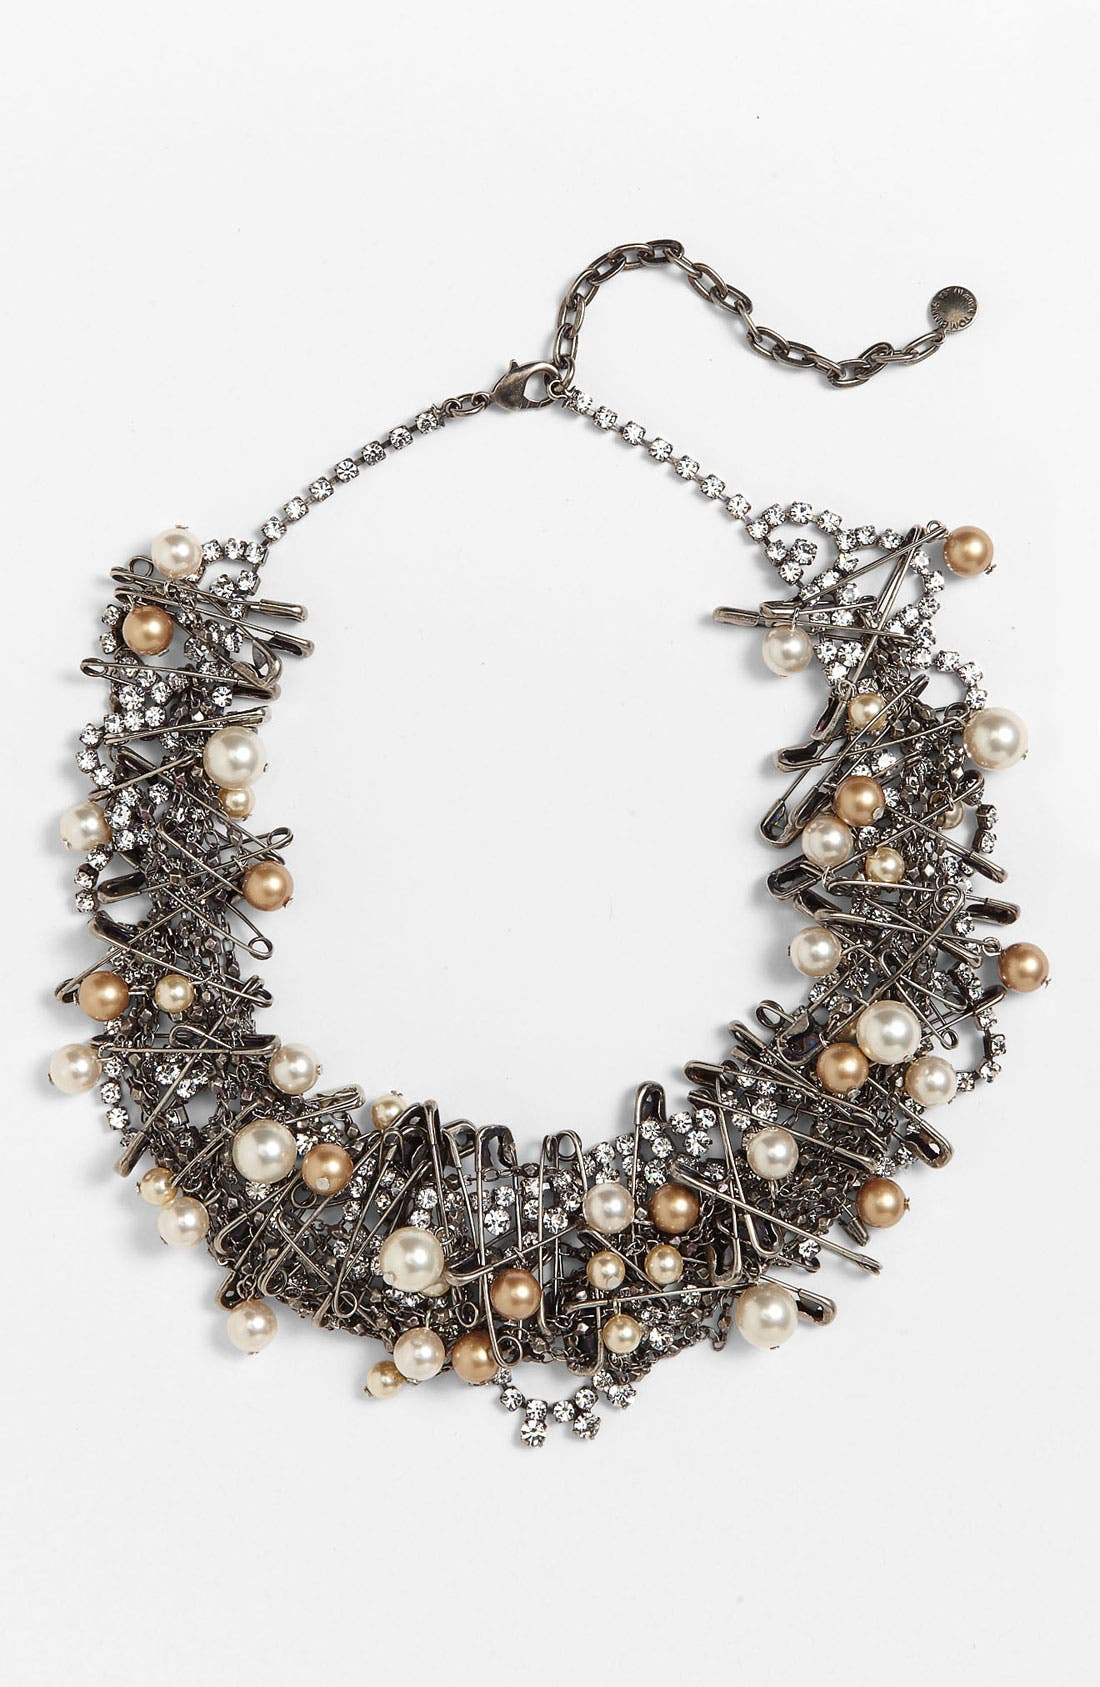 Main Image - Tom Binns 'Punk Chic Pearls' Statement Necklace